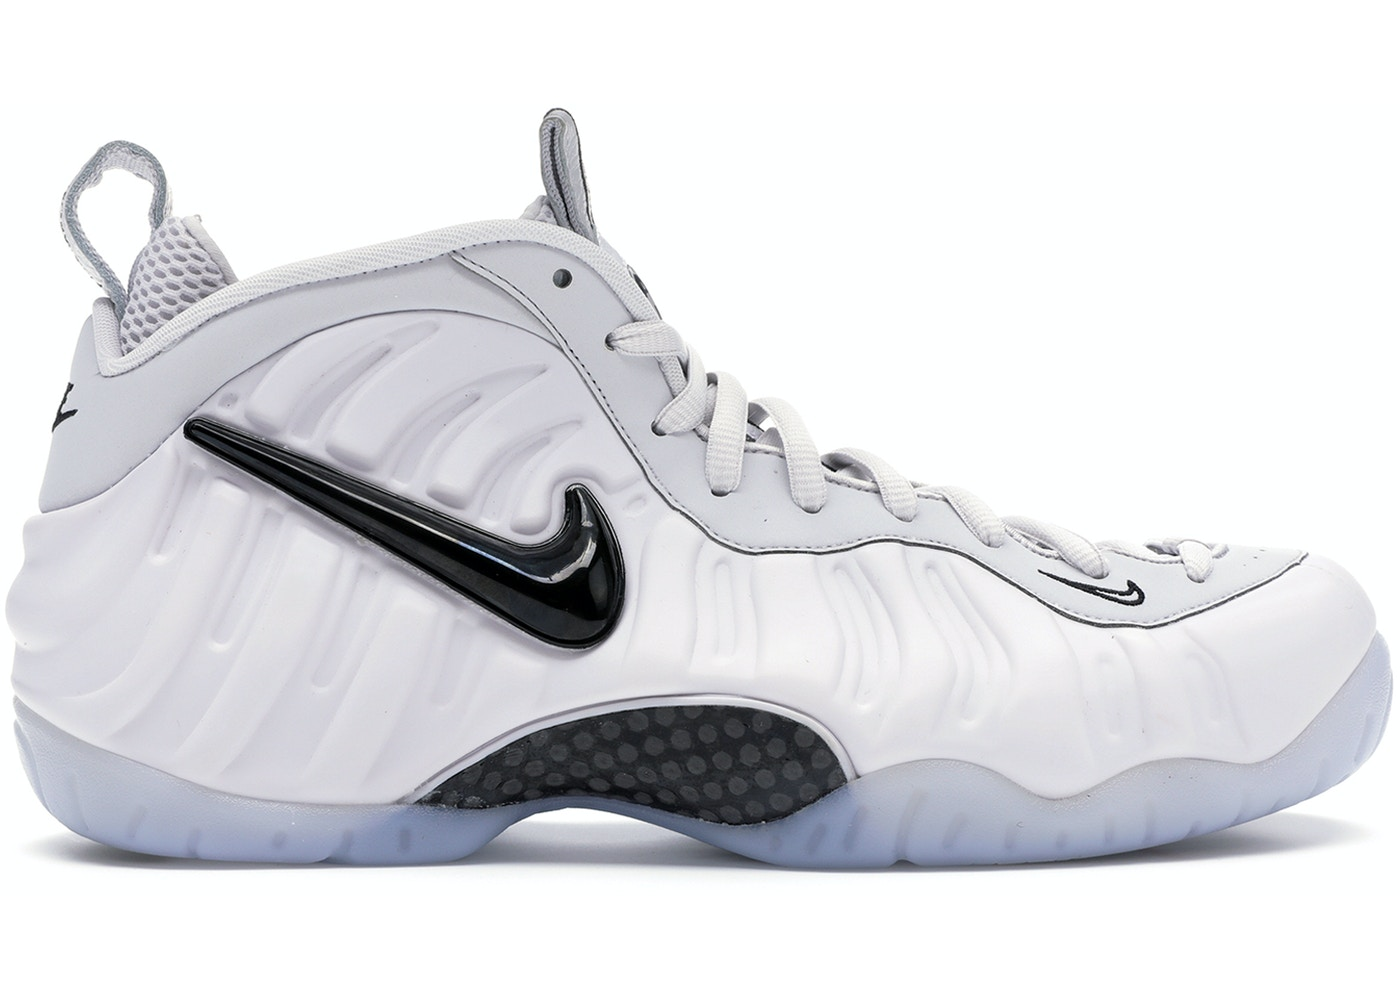 half off f98c4 22158 Buy Nike Foamposite Shoes & Deadstock Sneakers